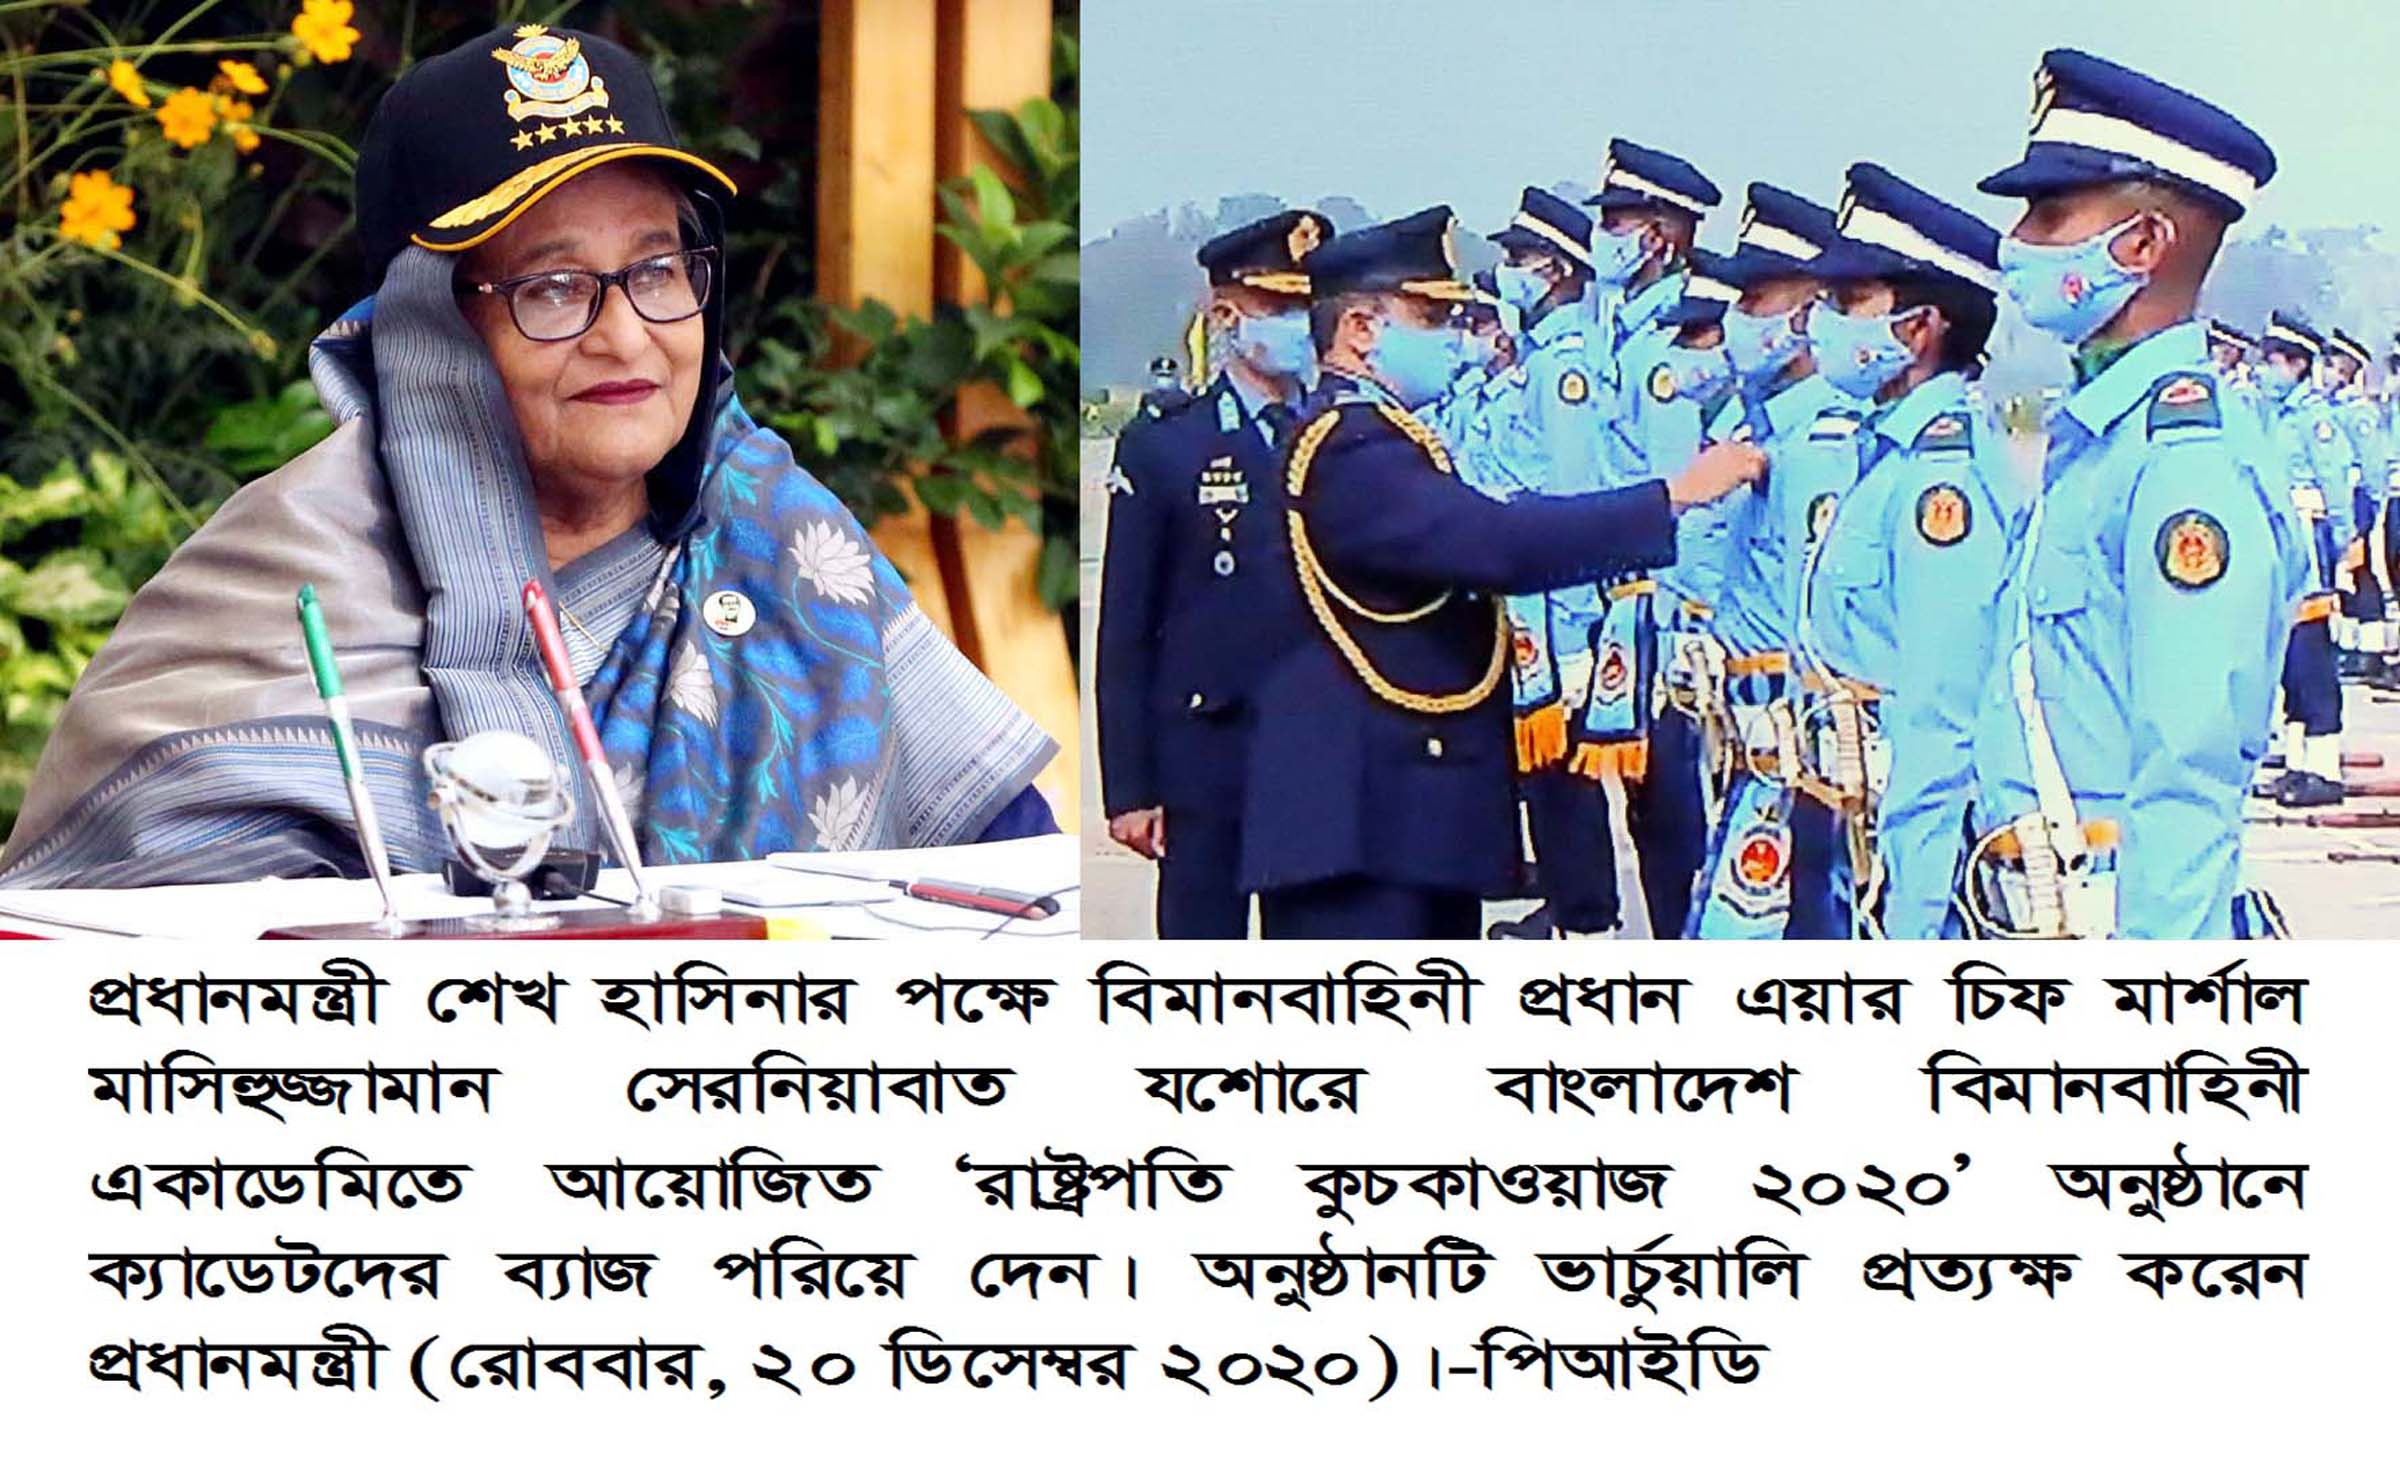 Sheikh Hasina participates in Bangladesh Air Force event virtually